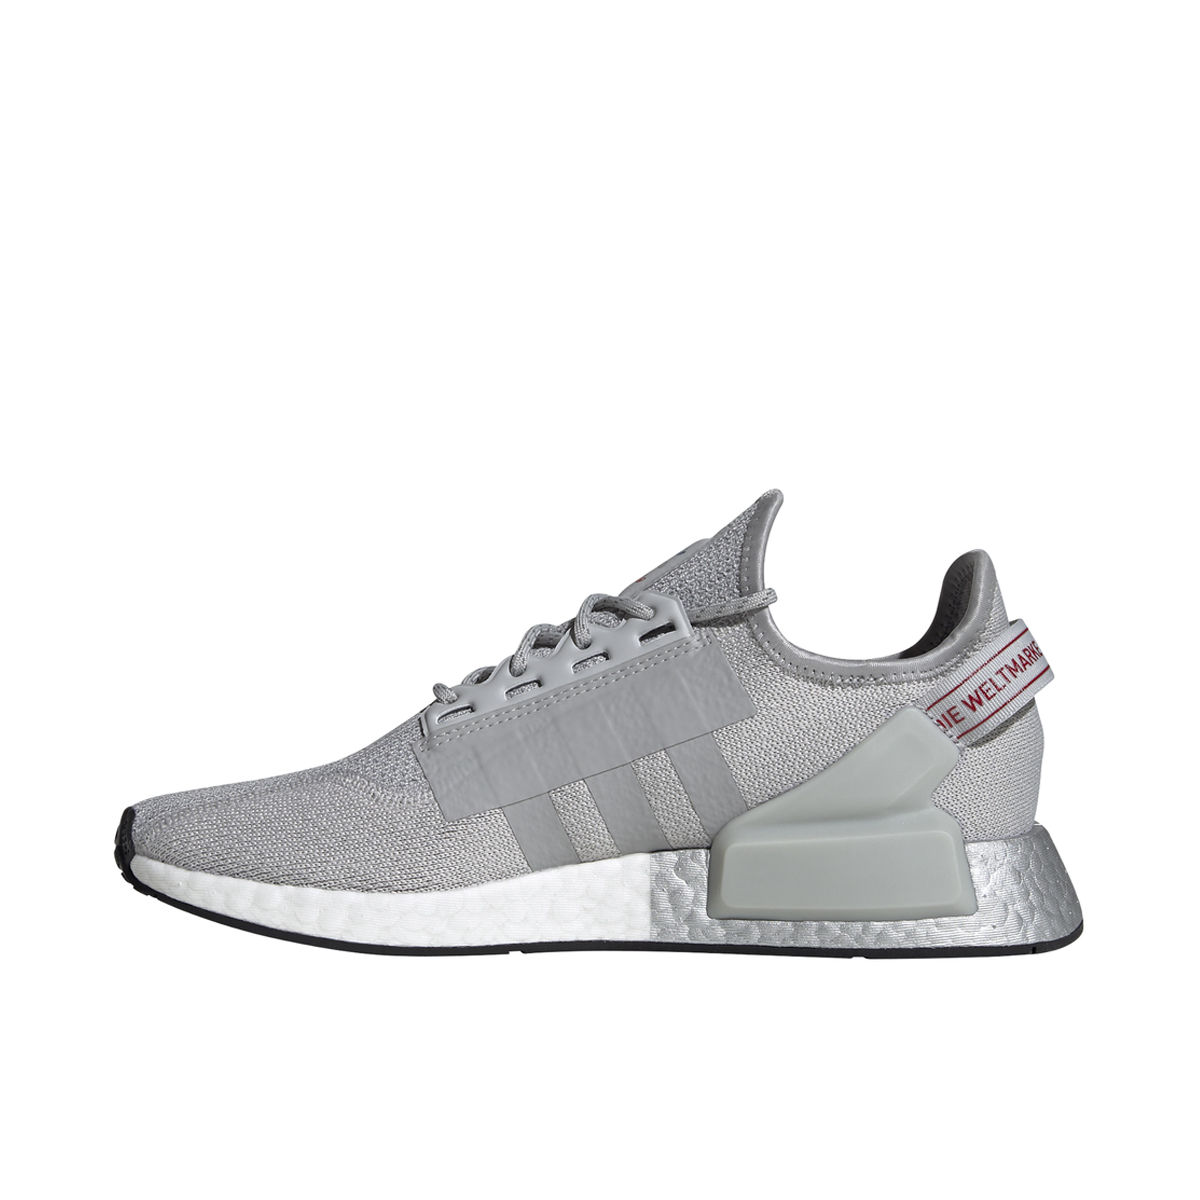 Buy Adidas Nmd R1 V2 Men S Shoes Online Foot Locker Ksa